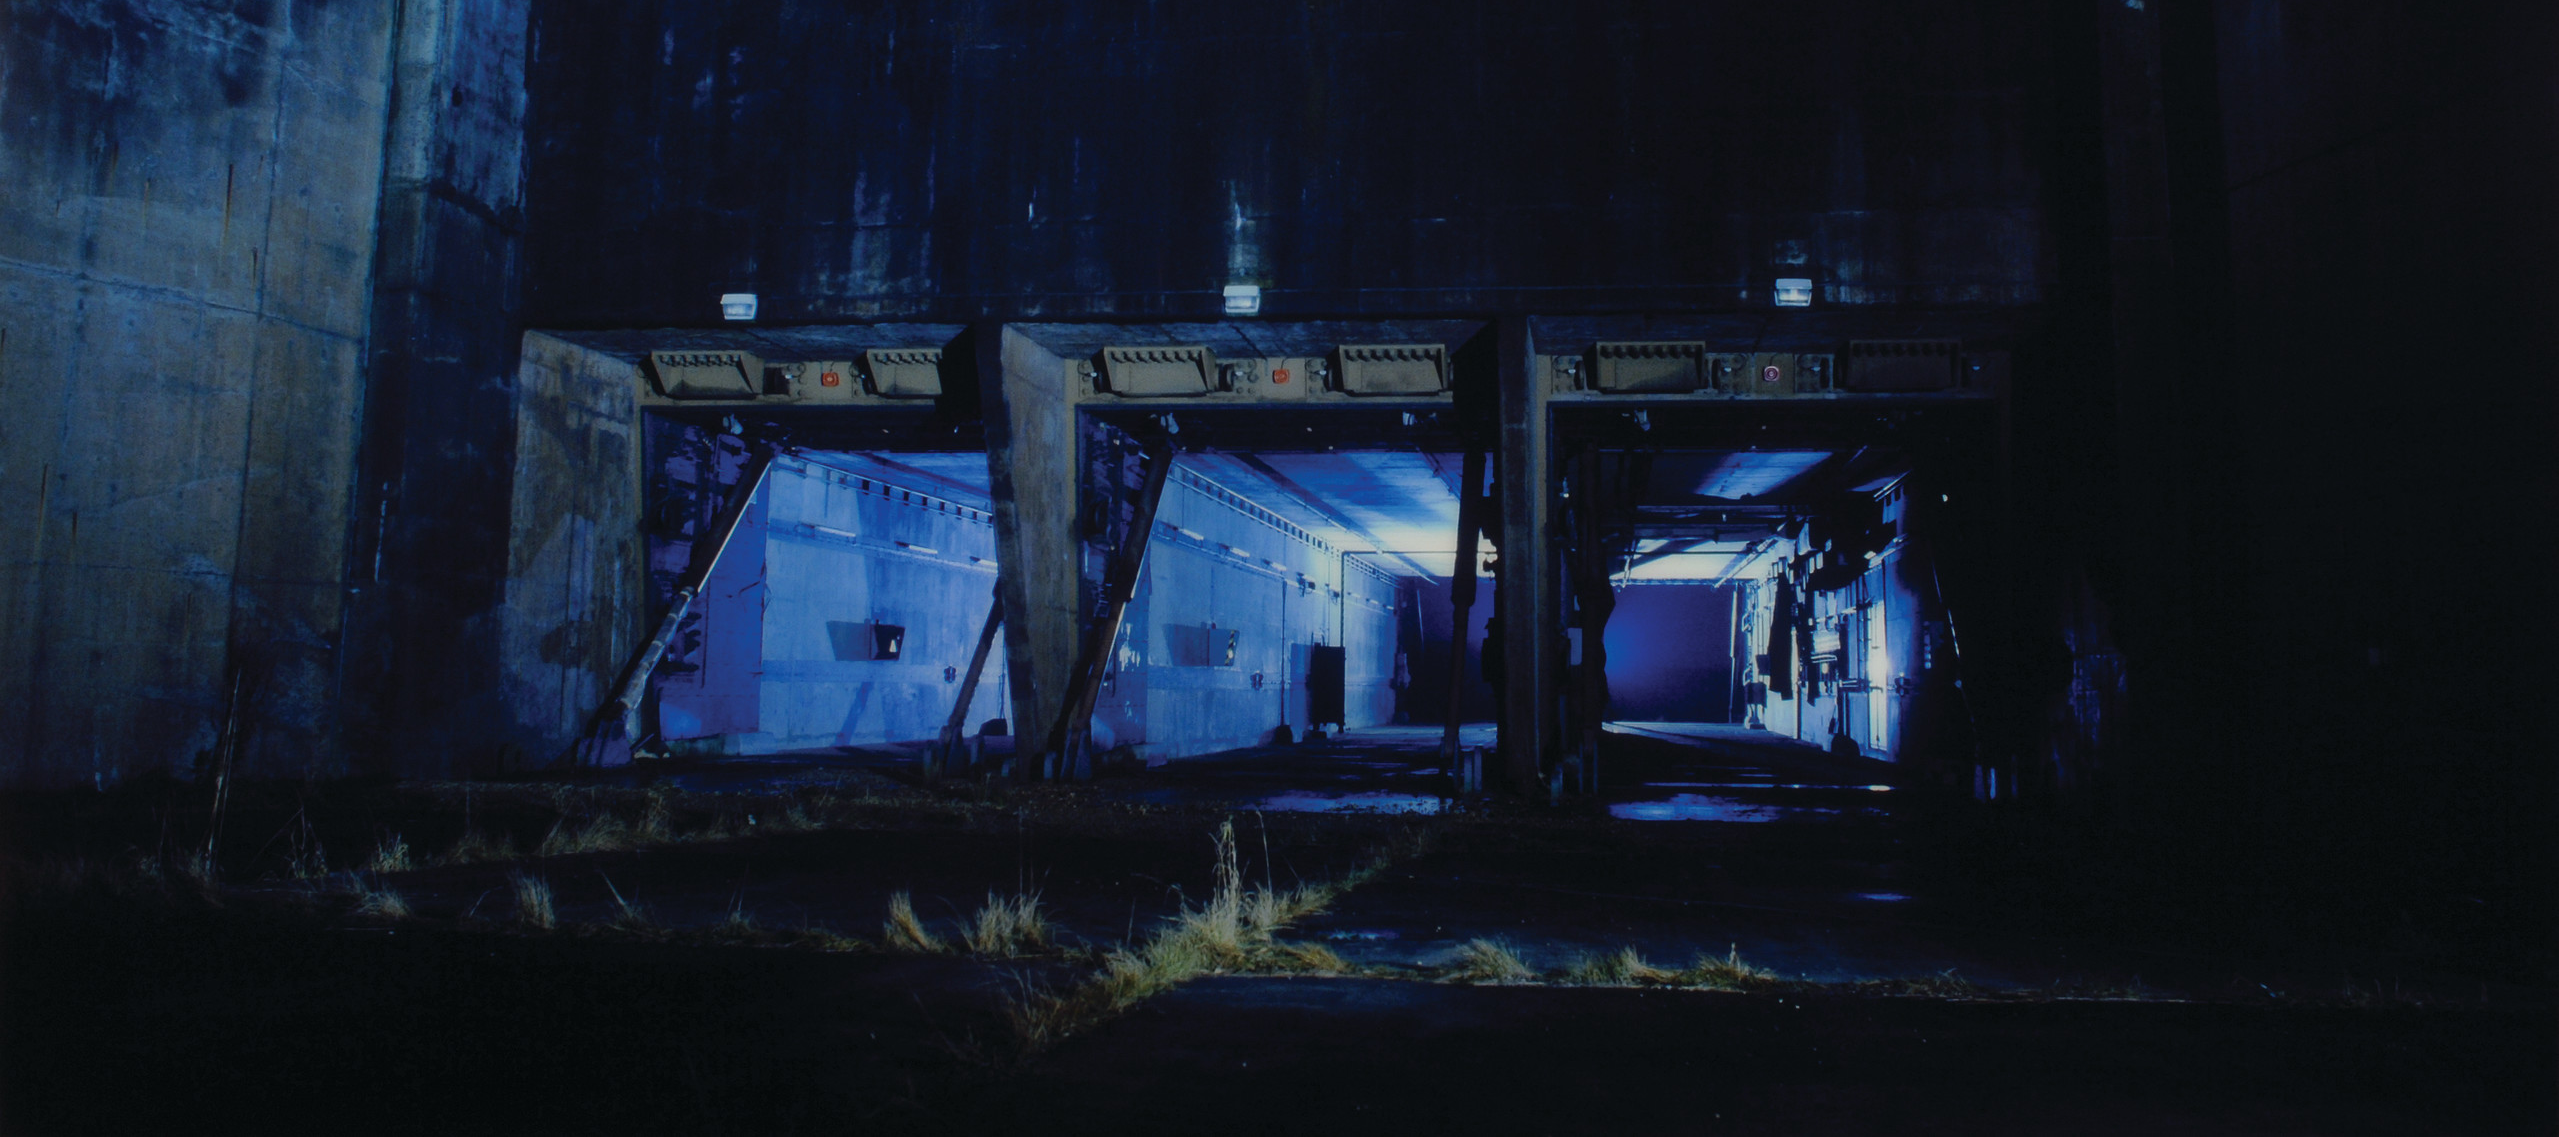 Eery photograph in blue tones of a concrete silo at night.